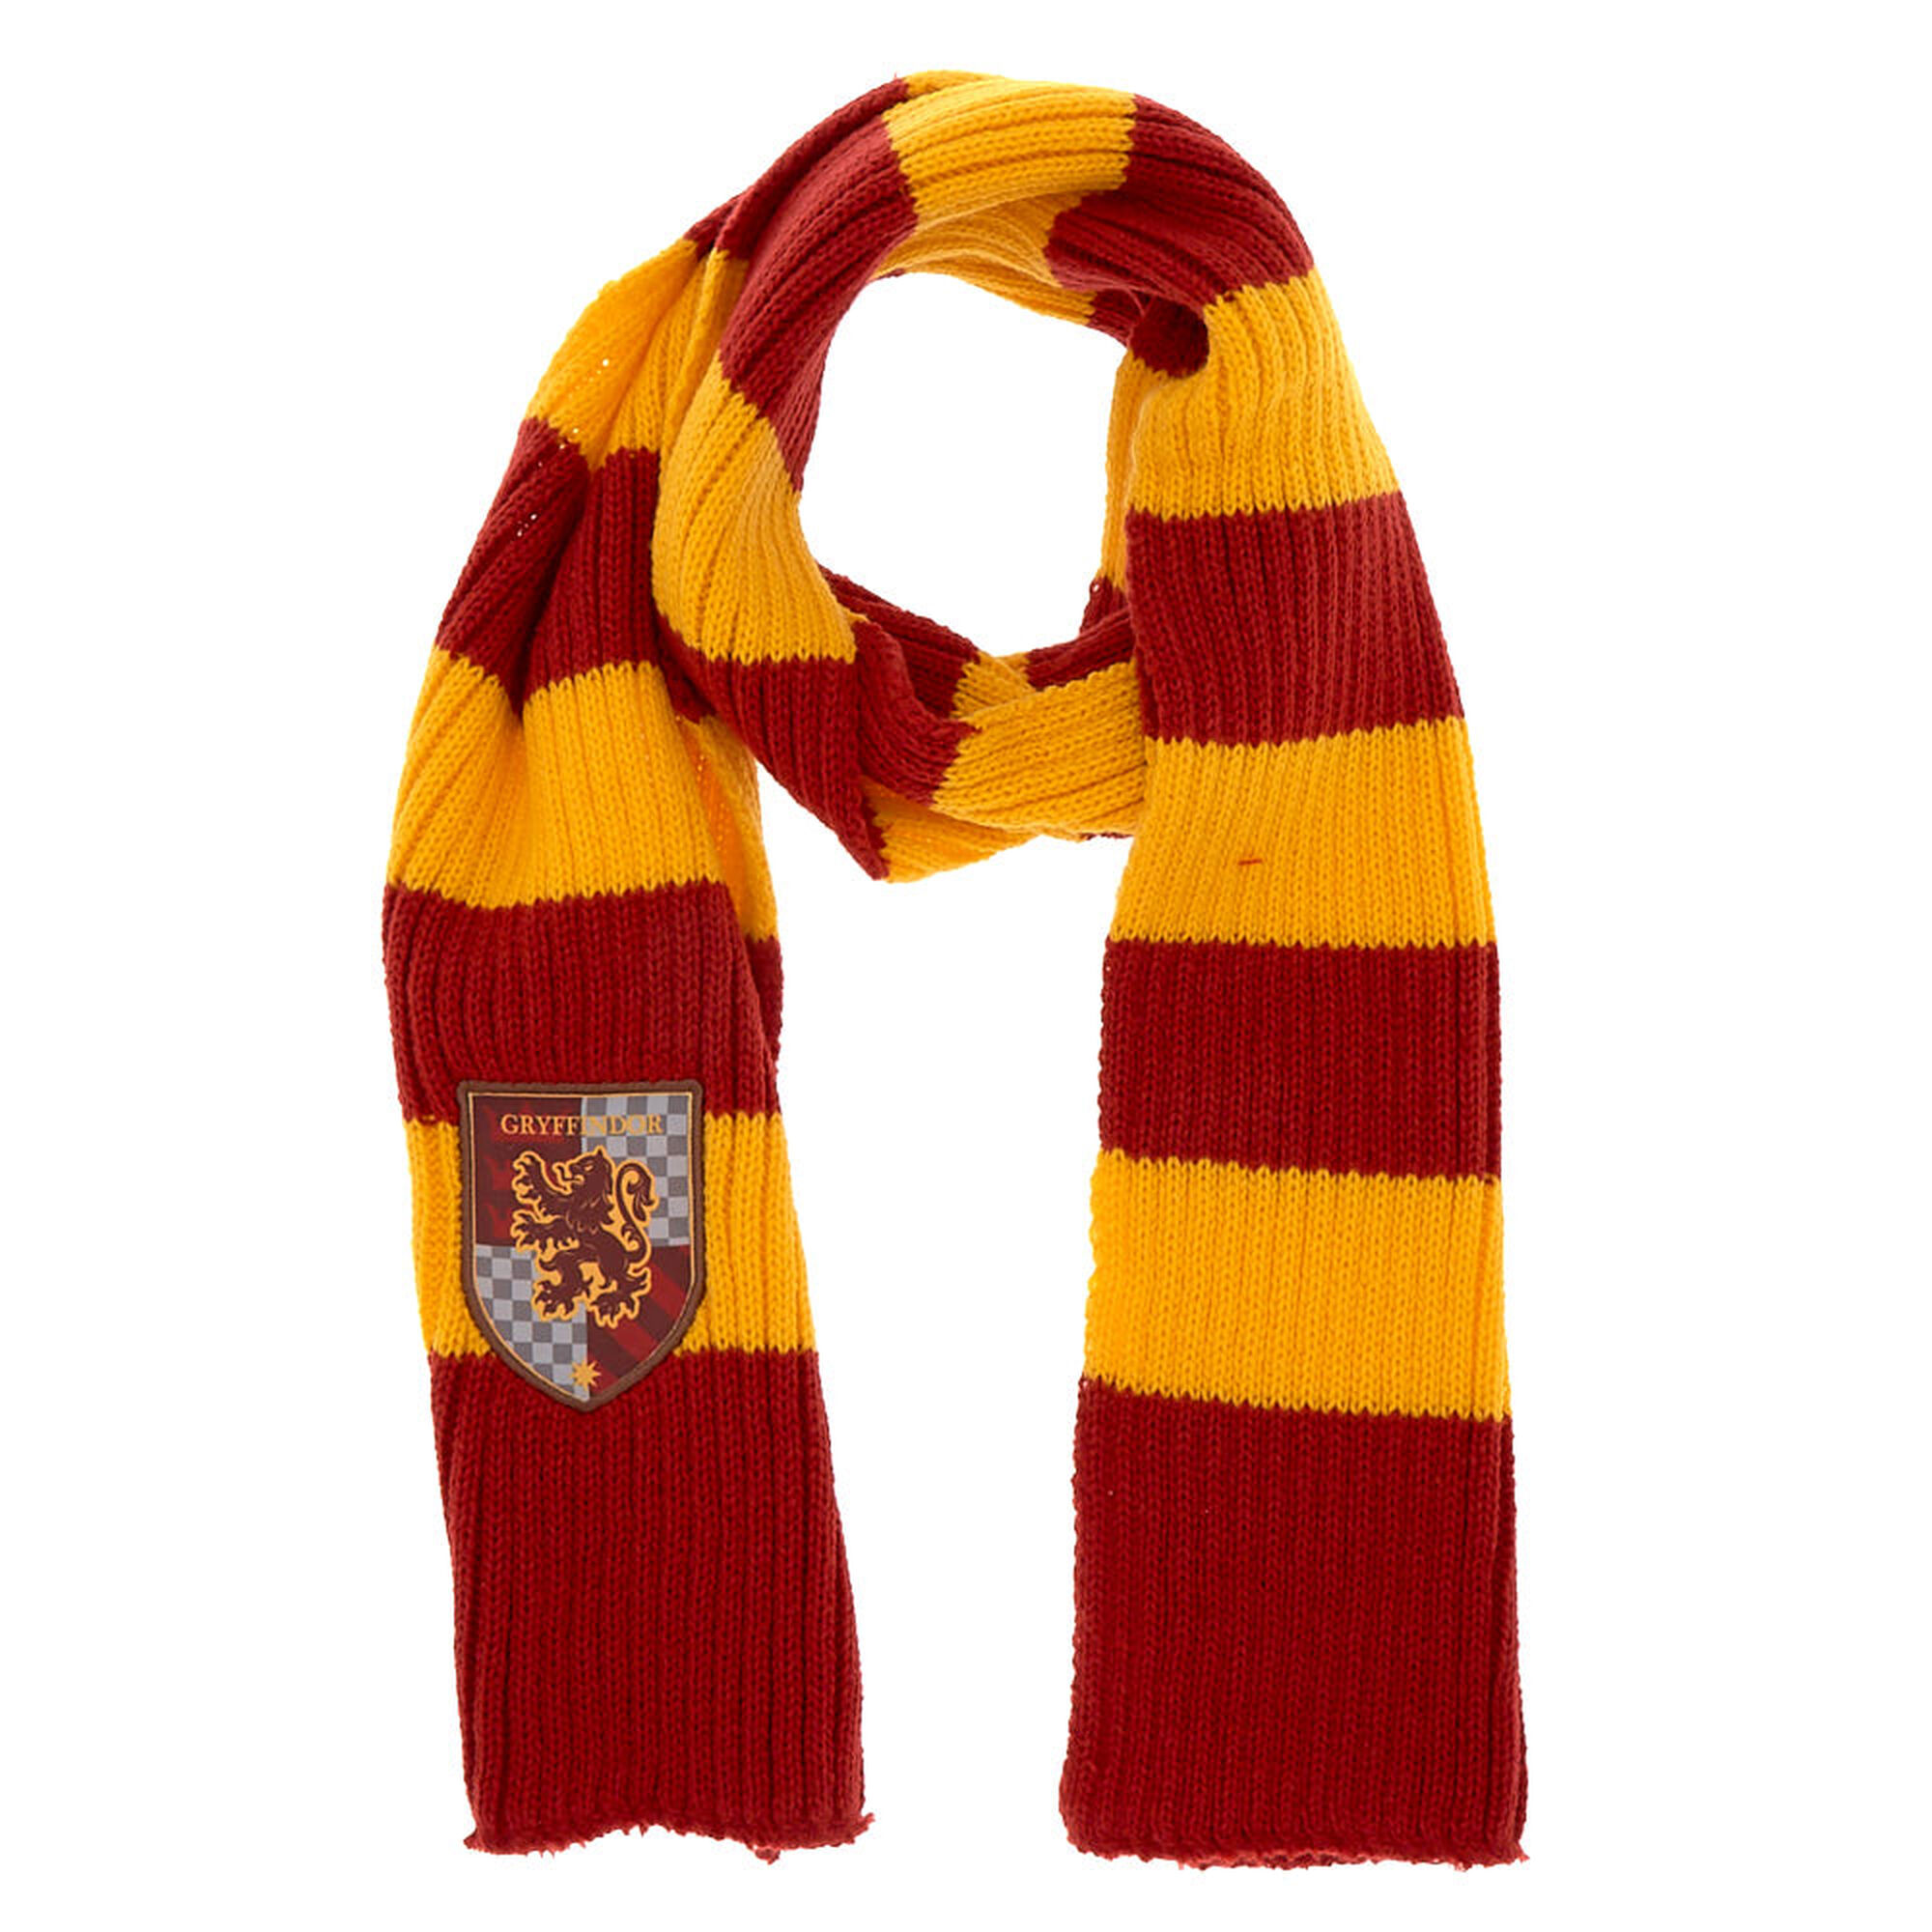 f758f240ff7 Harry Potter™ Gryffindor House Scarf - Red